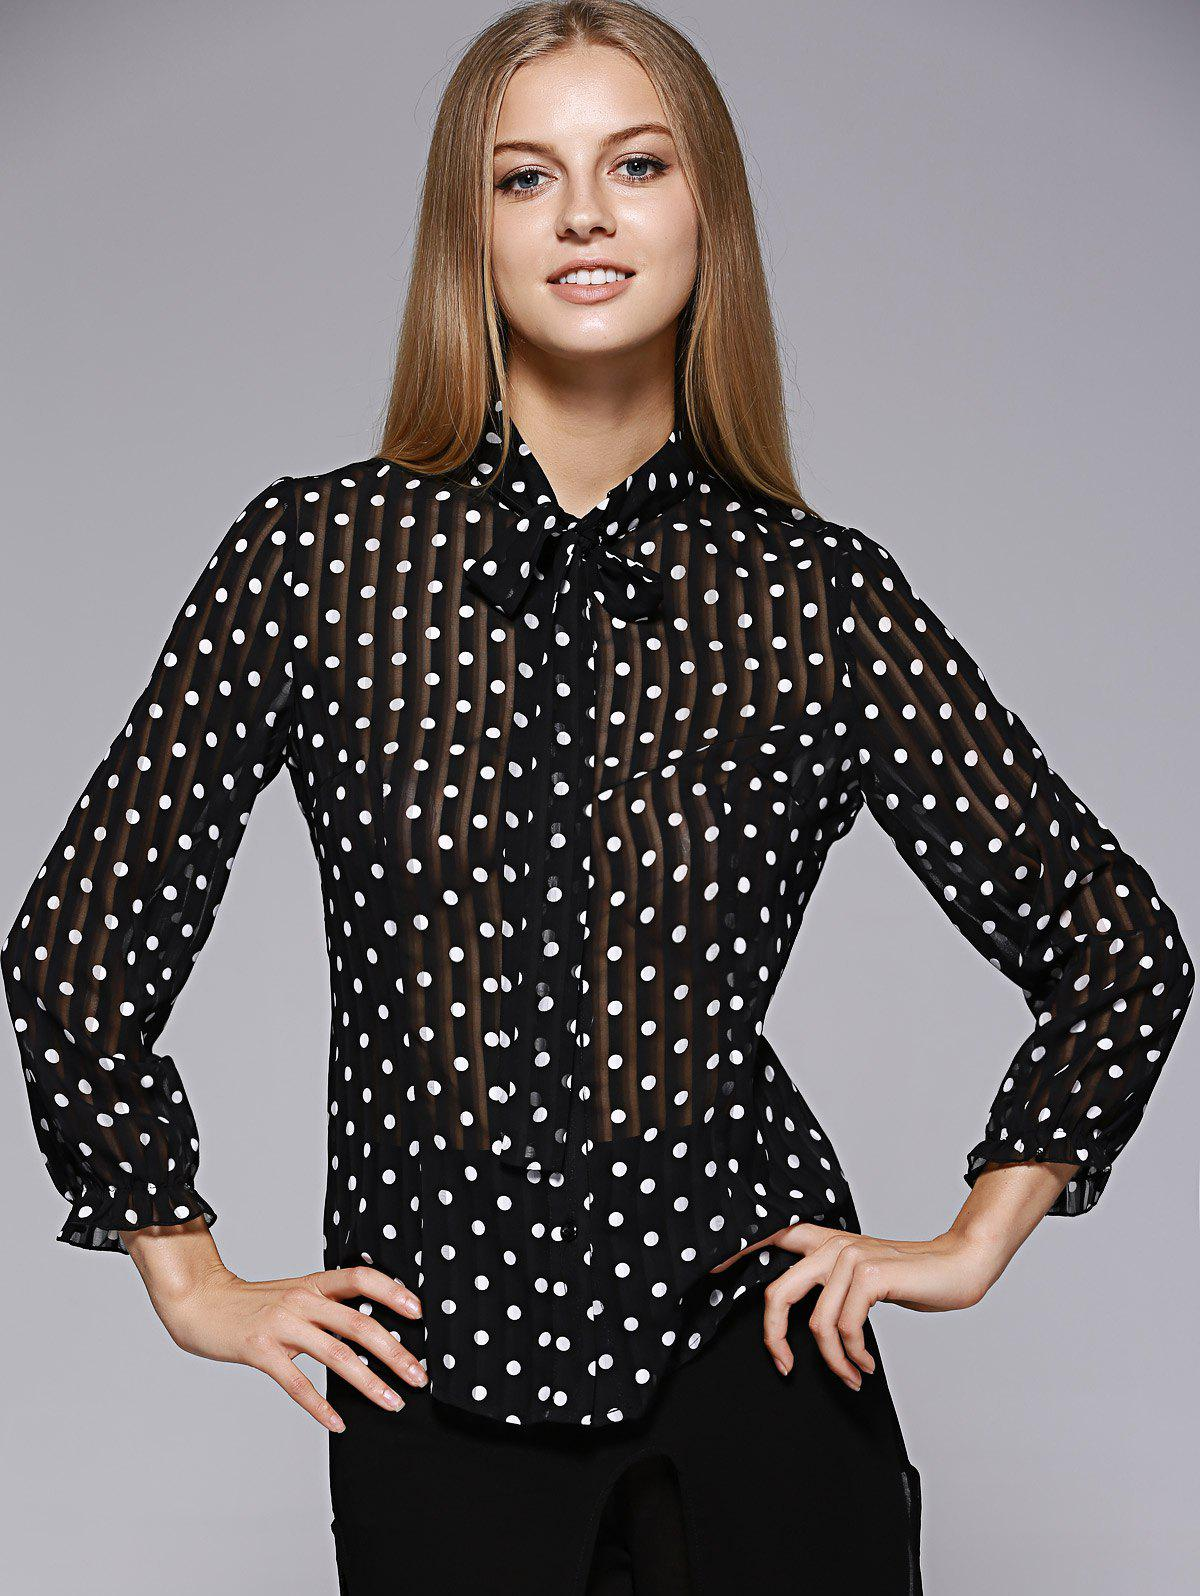 Fashionable Bow Tie Collar Dot Printing Blouse For Women - WHITE/BLACK XL